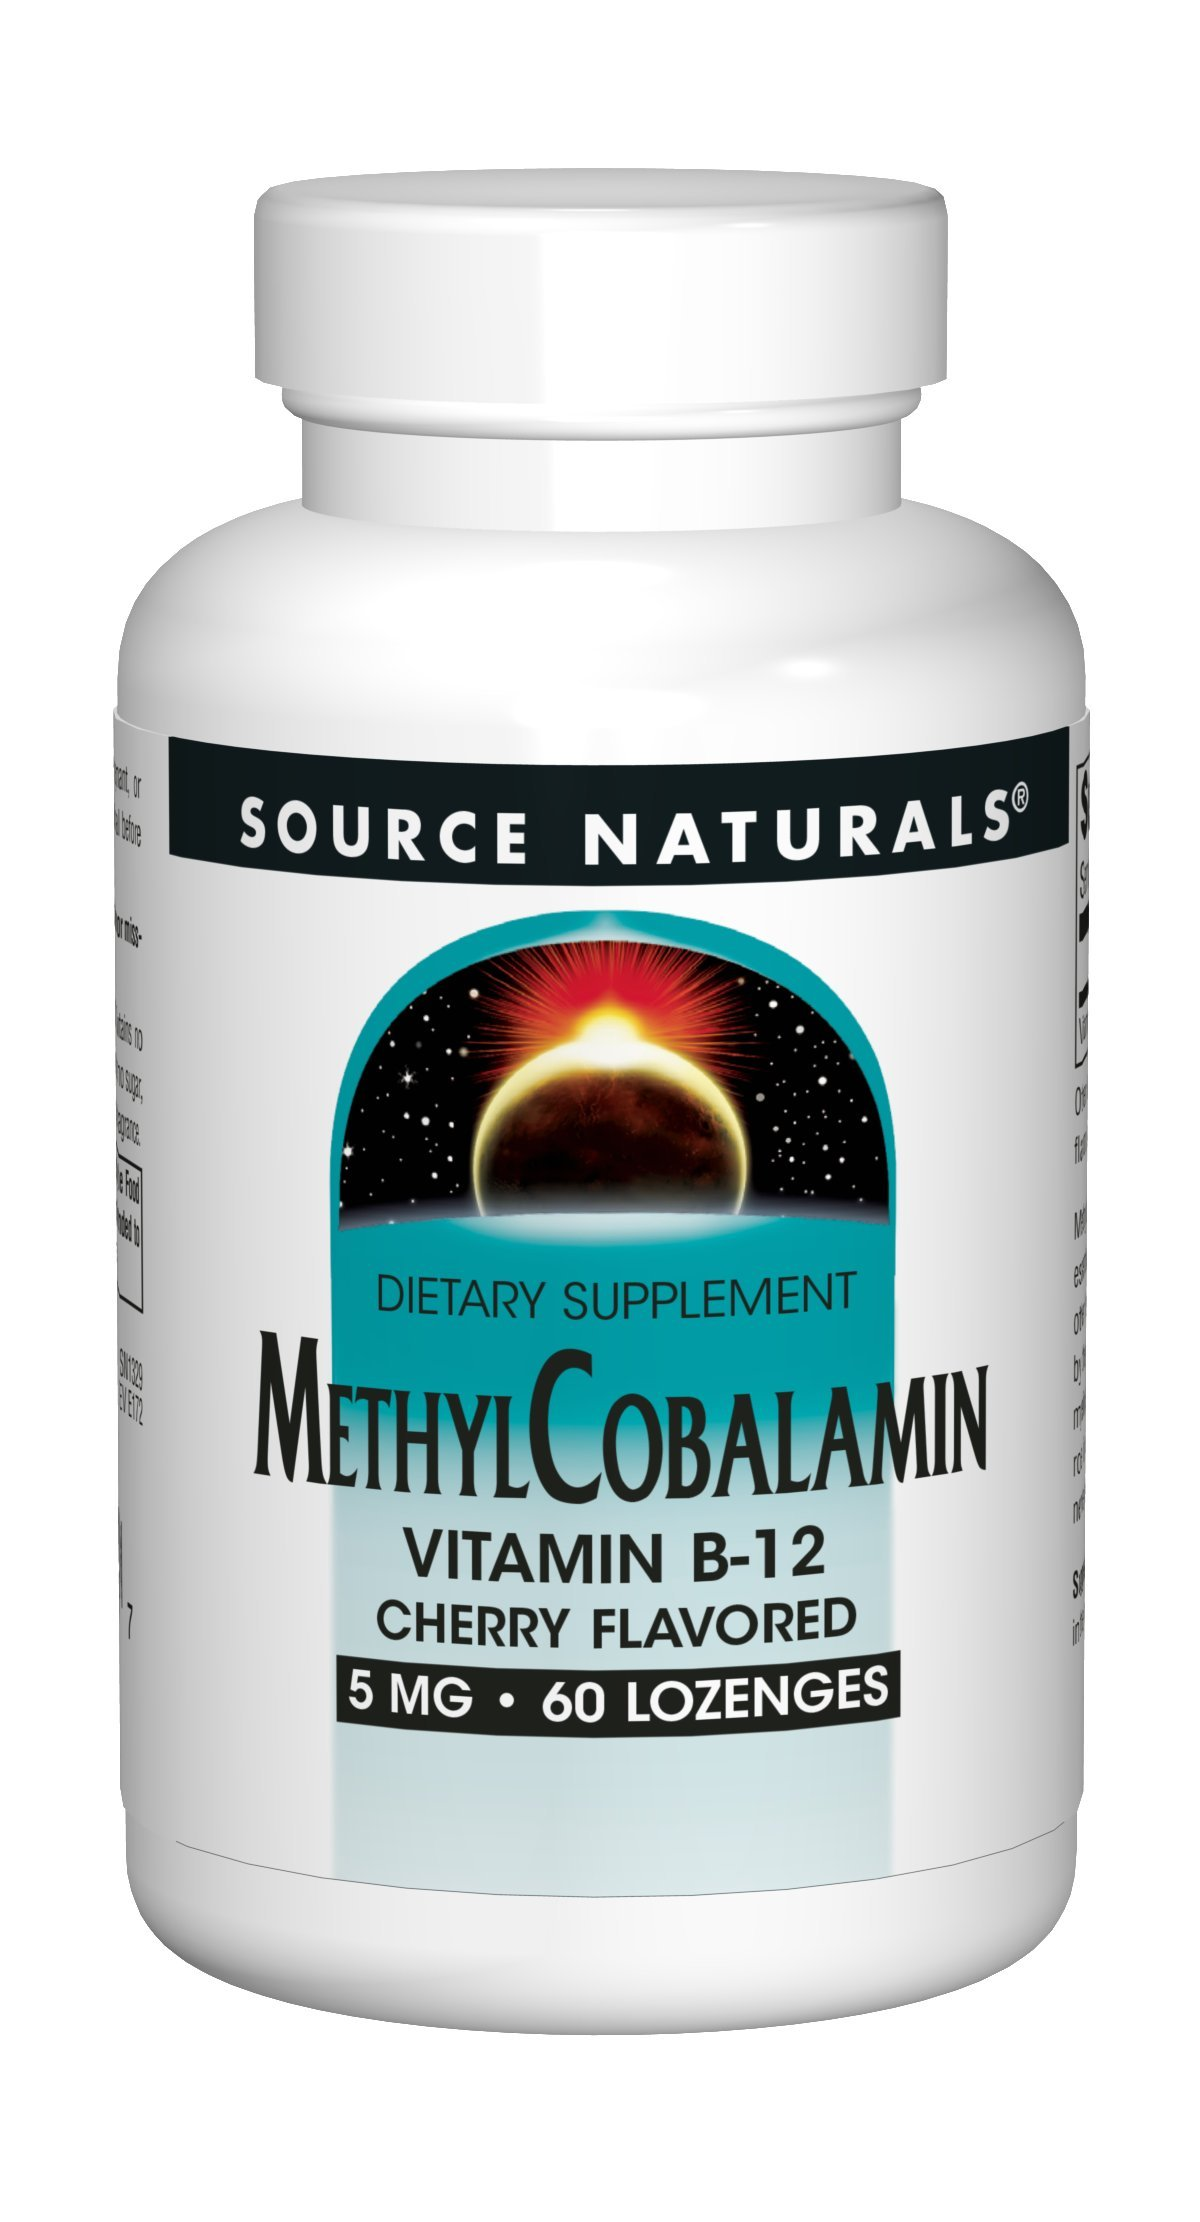 Source Naturals Methylcobalamin Vitamin B-12 5mg Cherry Flavored Sublingual - 60 Tablets